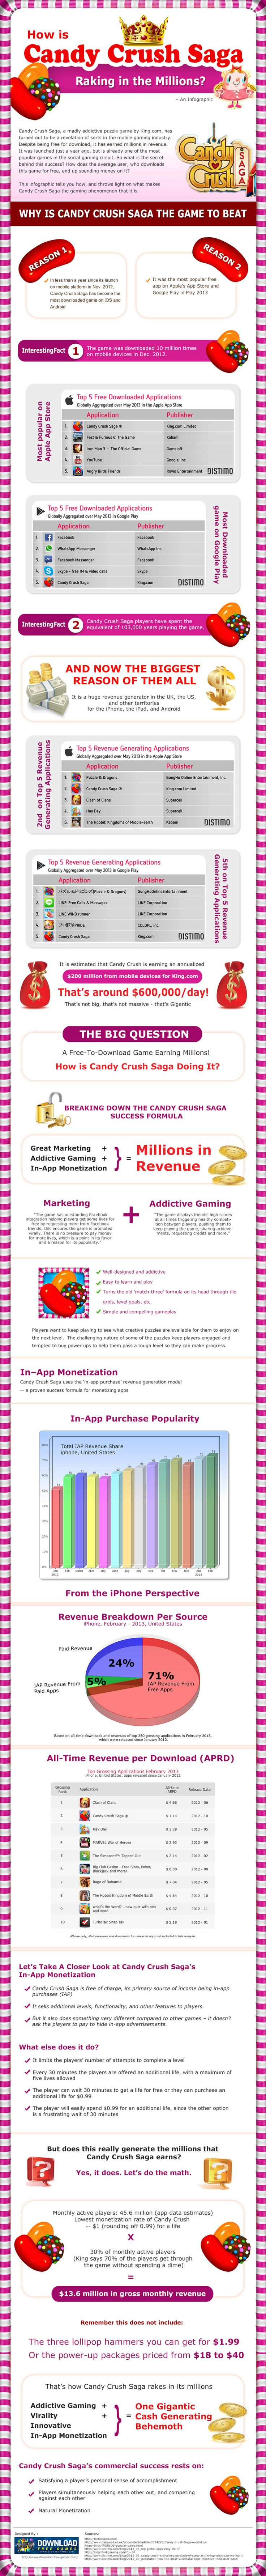 A free-to-download game earning Millions! How is Candy Crush Saga doing it?